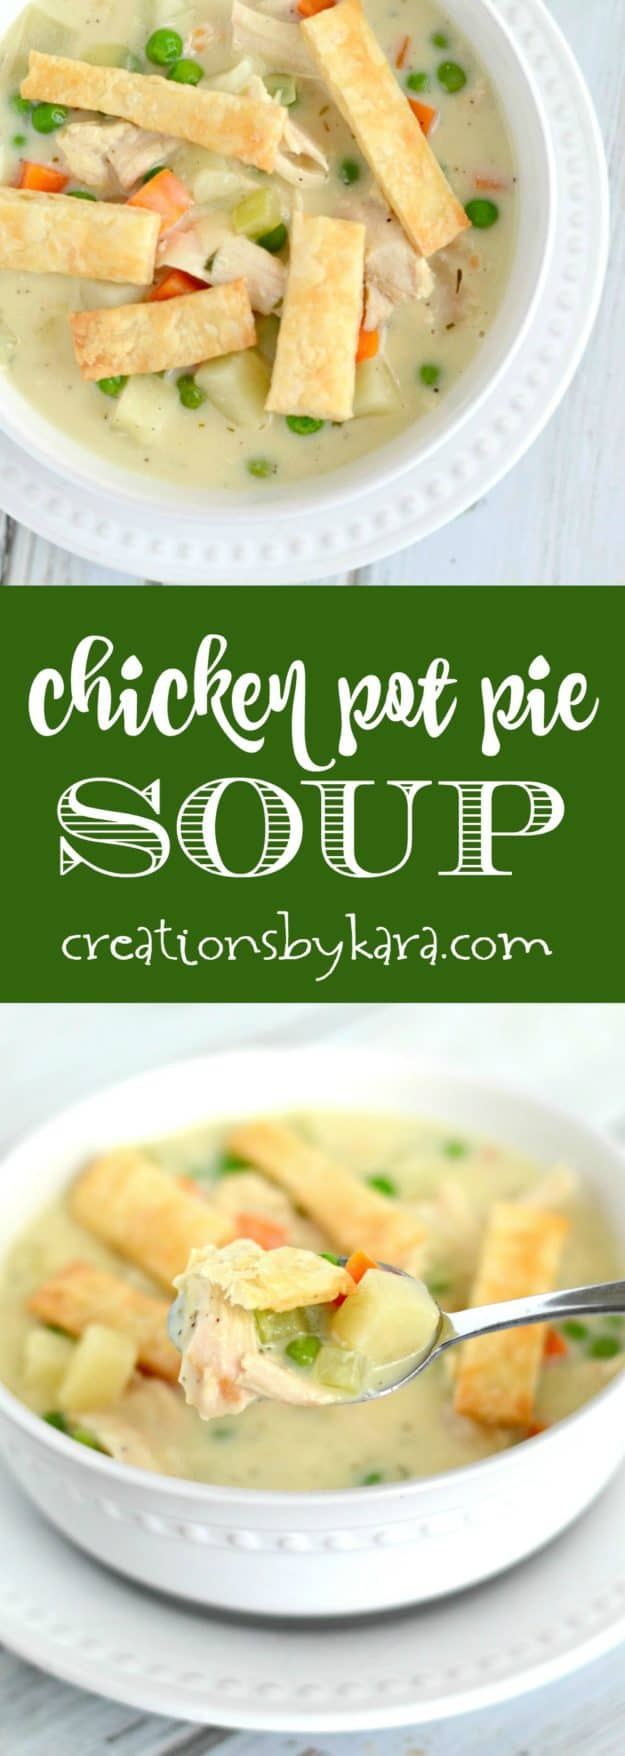 Homemade Chicken Pot Pie Soup recipe - all the flavors of the classic recipe in soup form. So creamy, hearty, and delicious, it is sure to become a favorite soup recipe. A copycat recipe of the soup at Disneyland Pacific Wharf cafe.